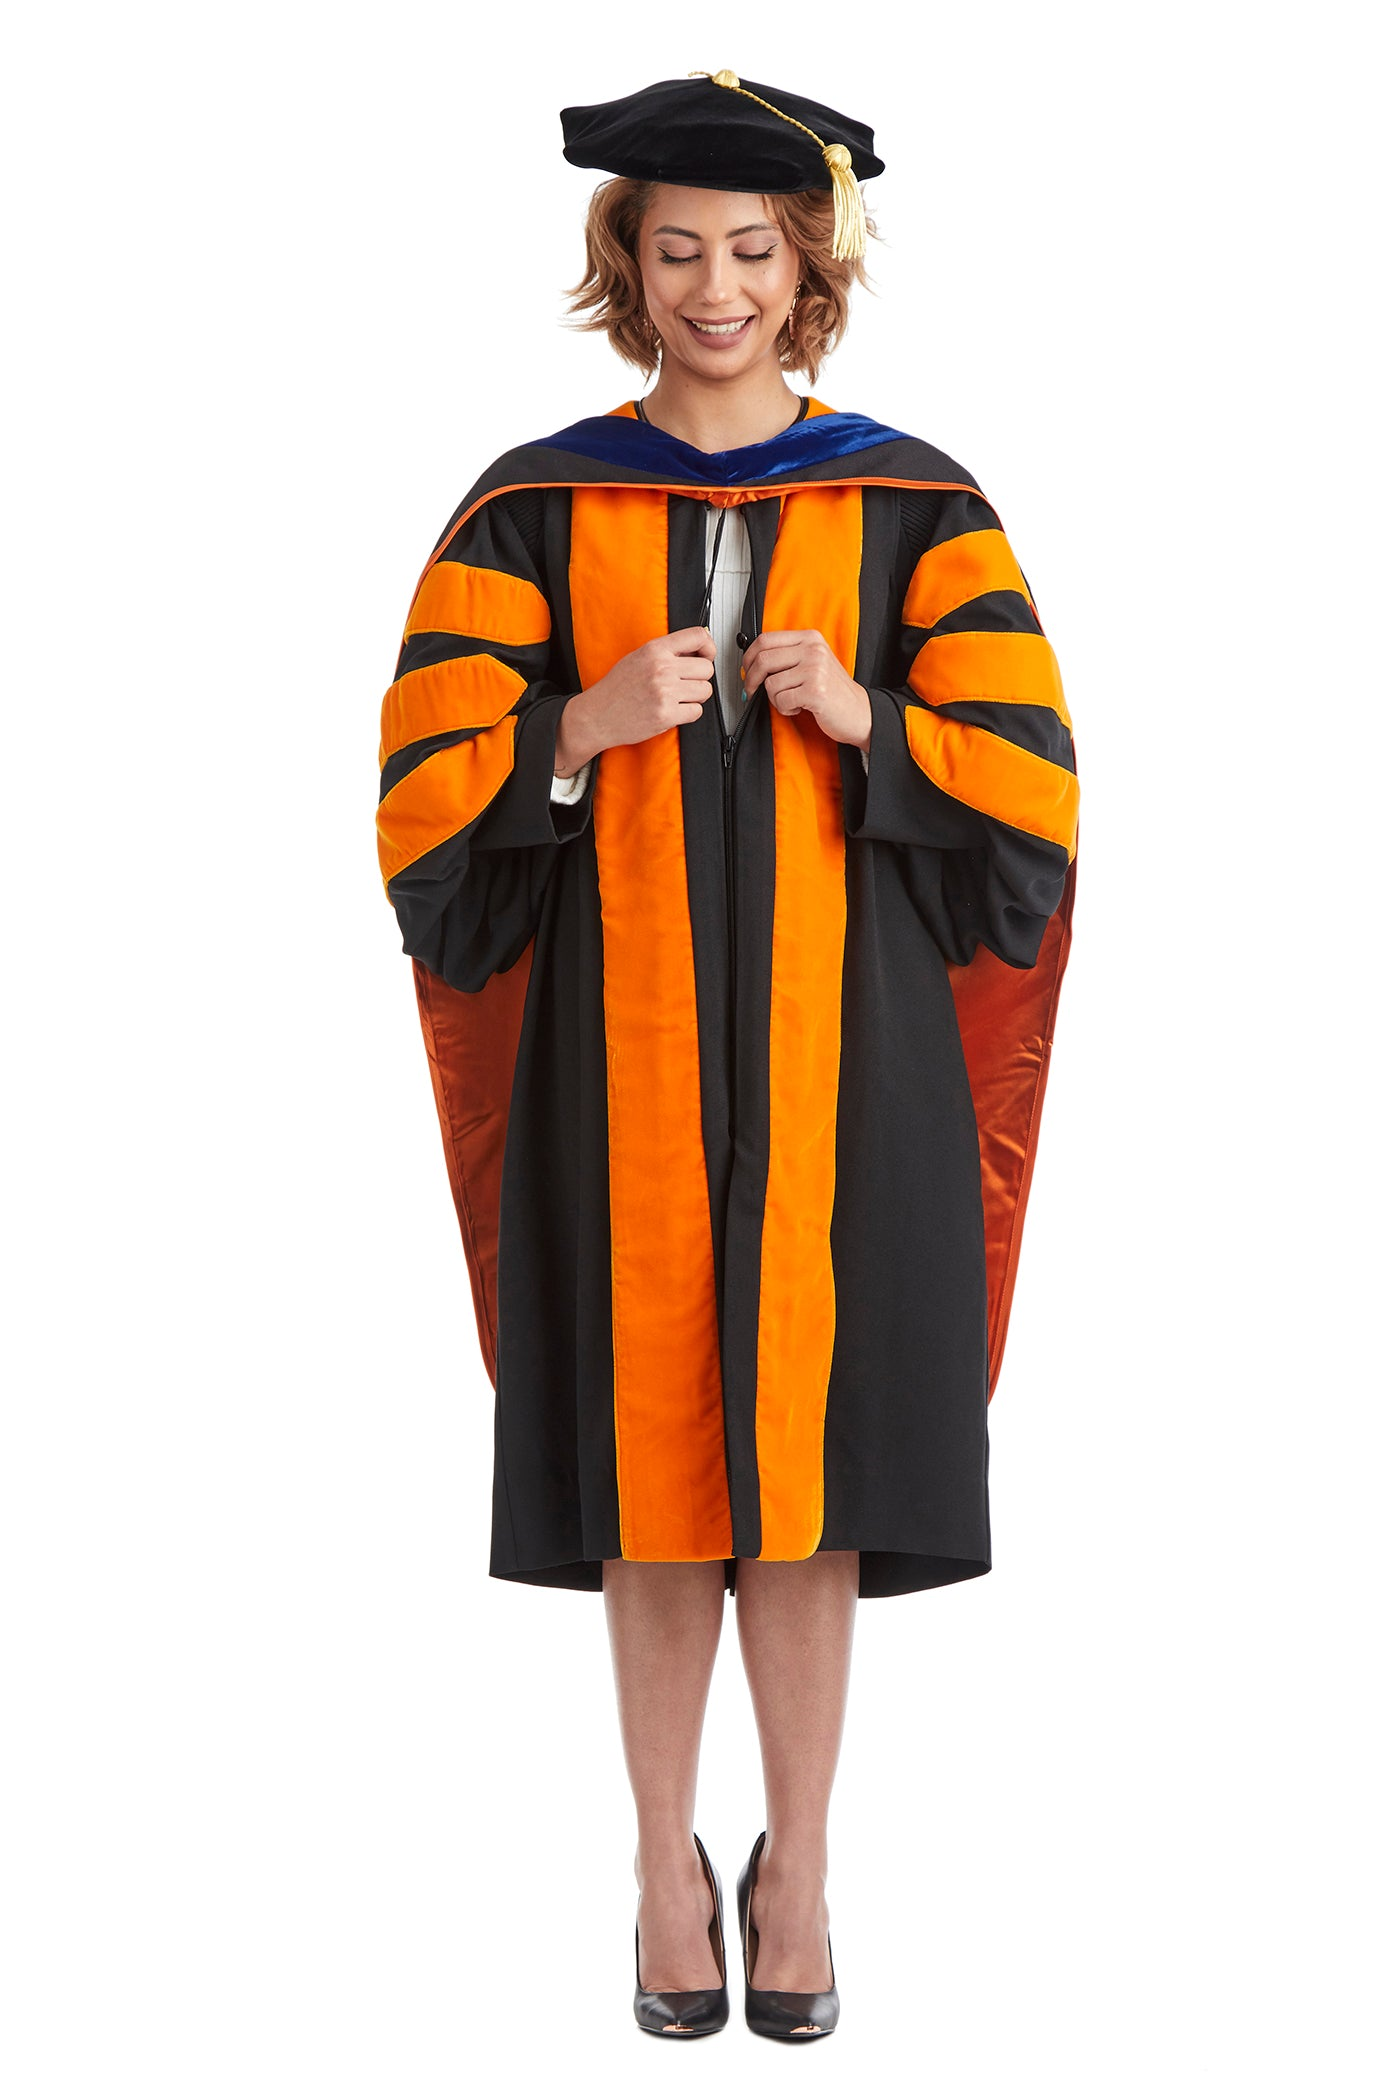 Princeton University Doctoral Regalia Set. Doctoral Gown, PhD Hood, and Eight Sided Doctoral Tam with Tassel